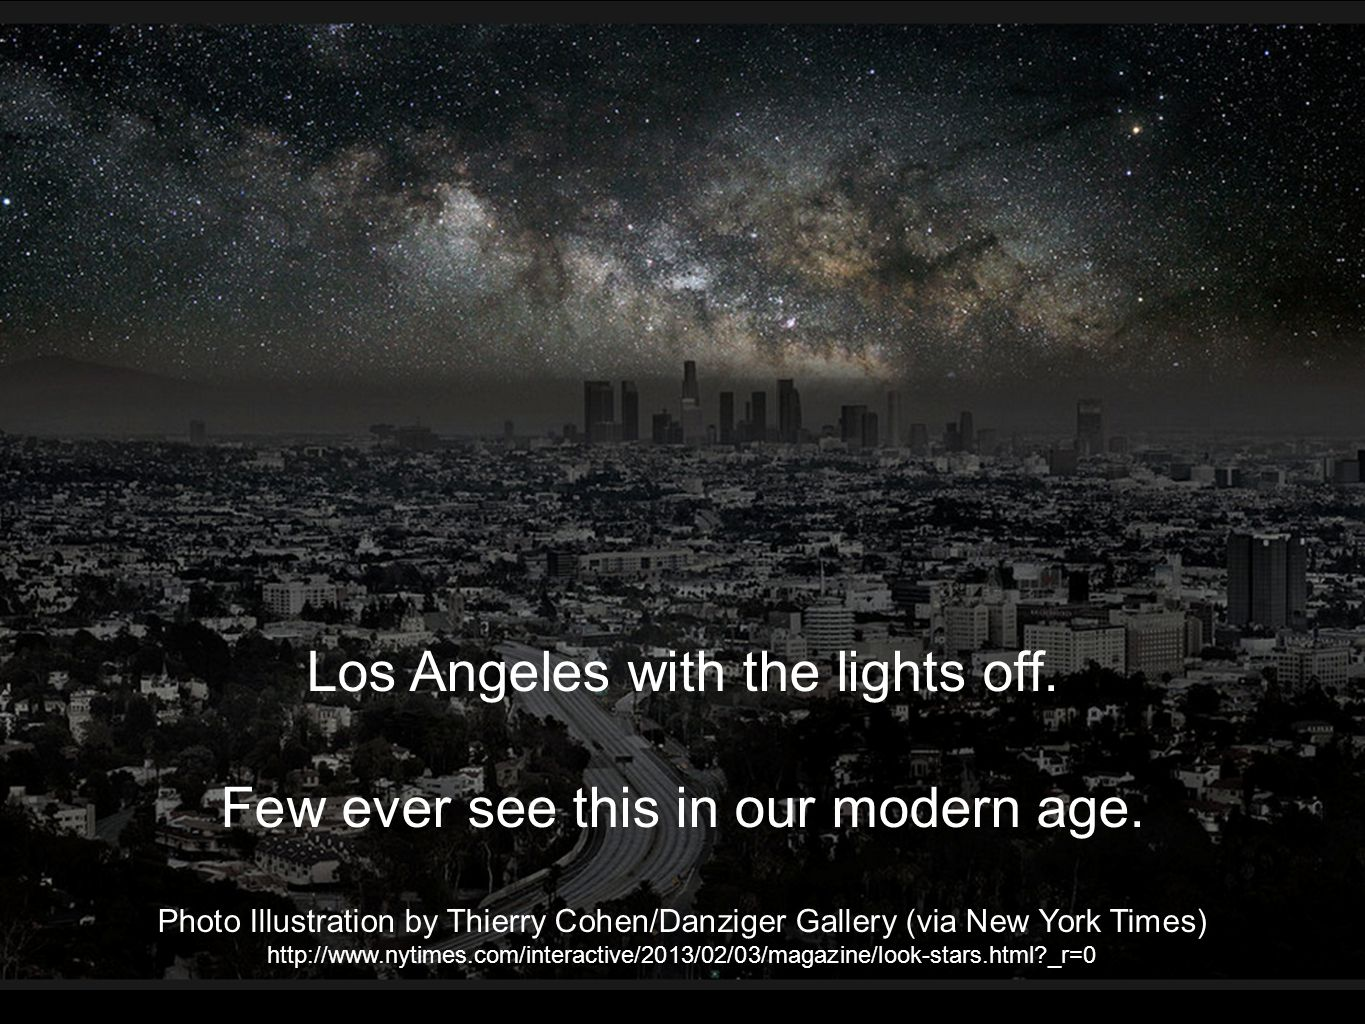 Photo Illustration by Thierry Cohen/Danziger Gallery (via New York Times) http://www.nytimes.com/interactive/2013/02/03/magazine/look-stars.html _r=0 Los Angeles with the lights off.